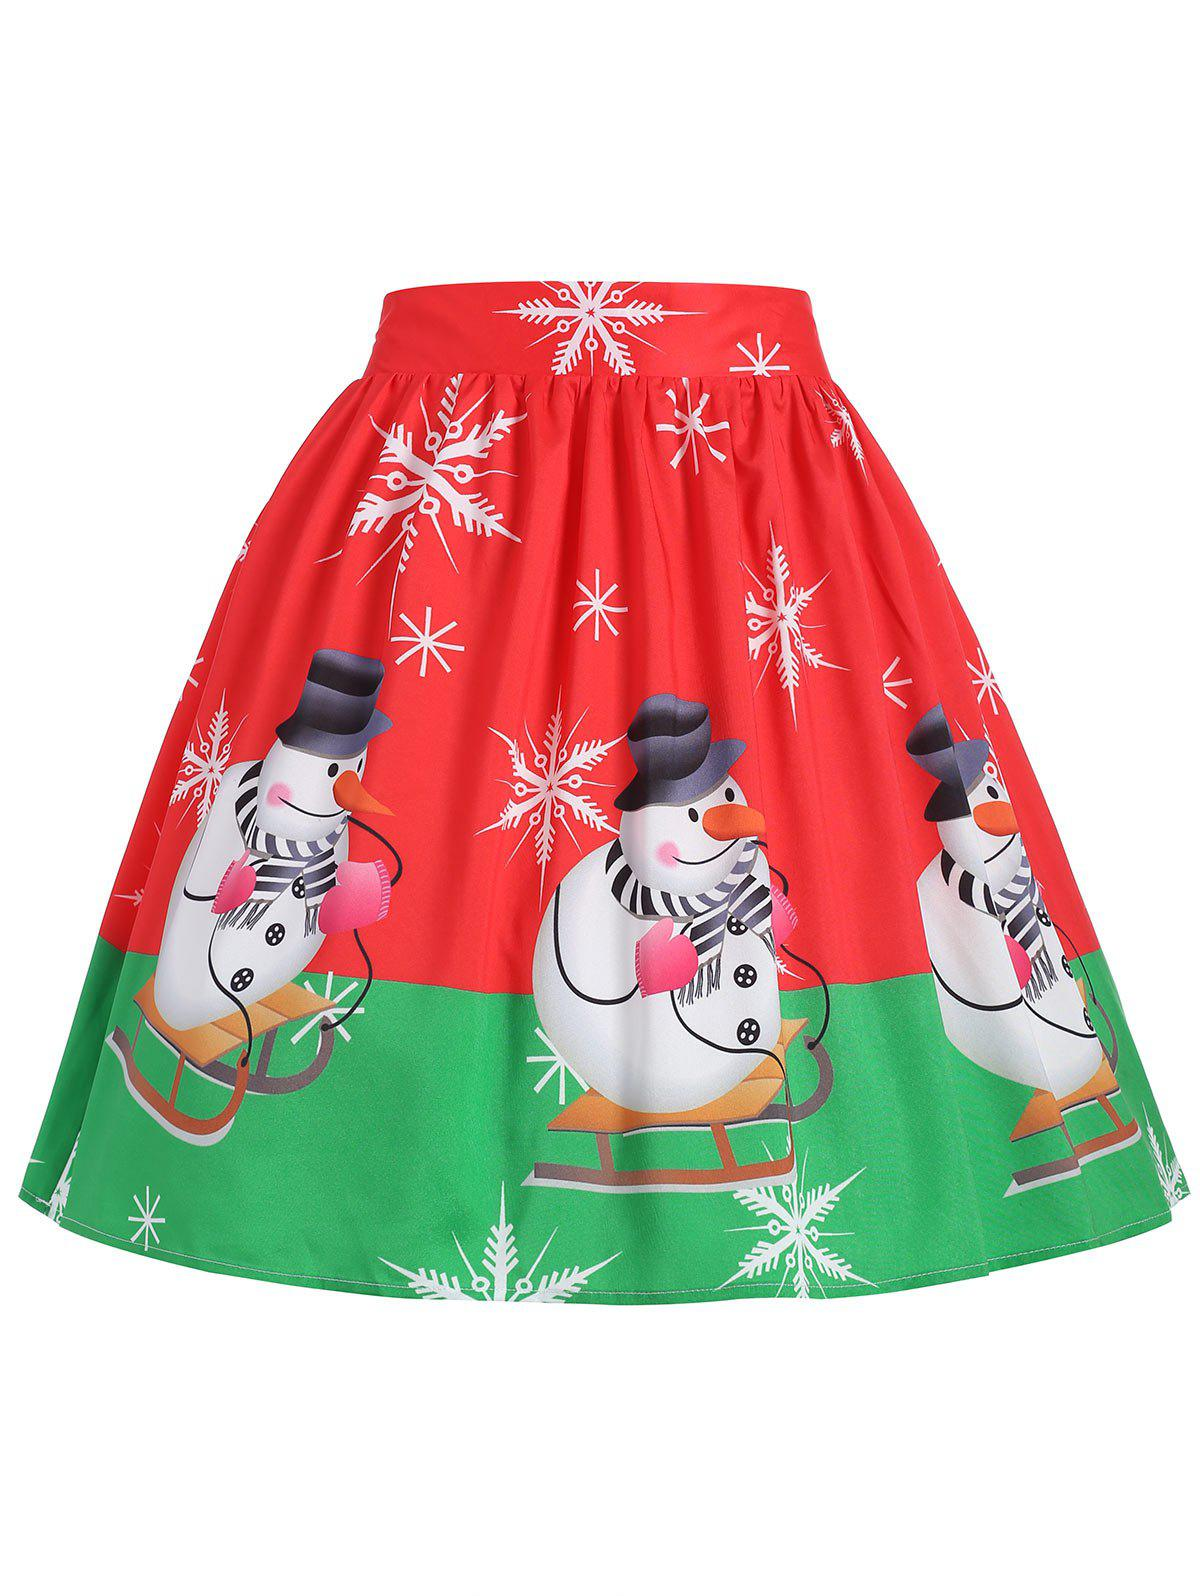 Plus Size Christmas Snowman Snowflake Skirt - RED XL